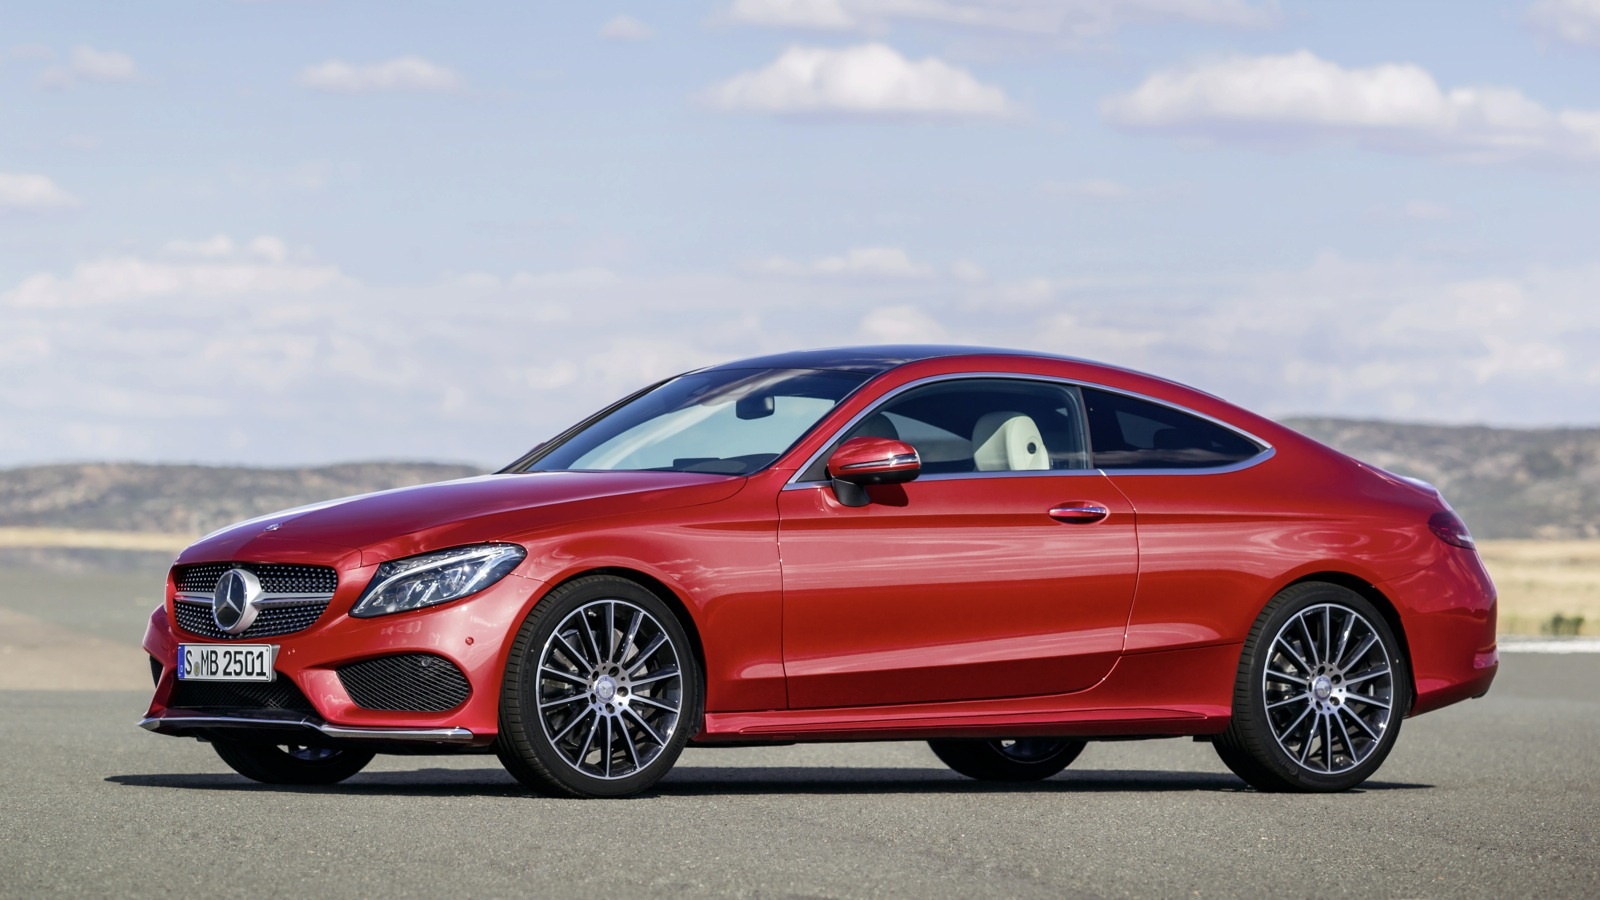 2016 mercedes benz c class coupe revealed photos 1 of 36 - Mercedes c class coupe used ...